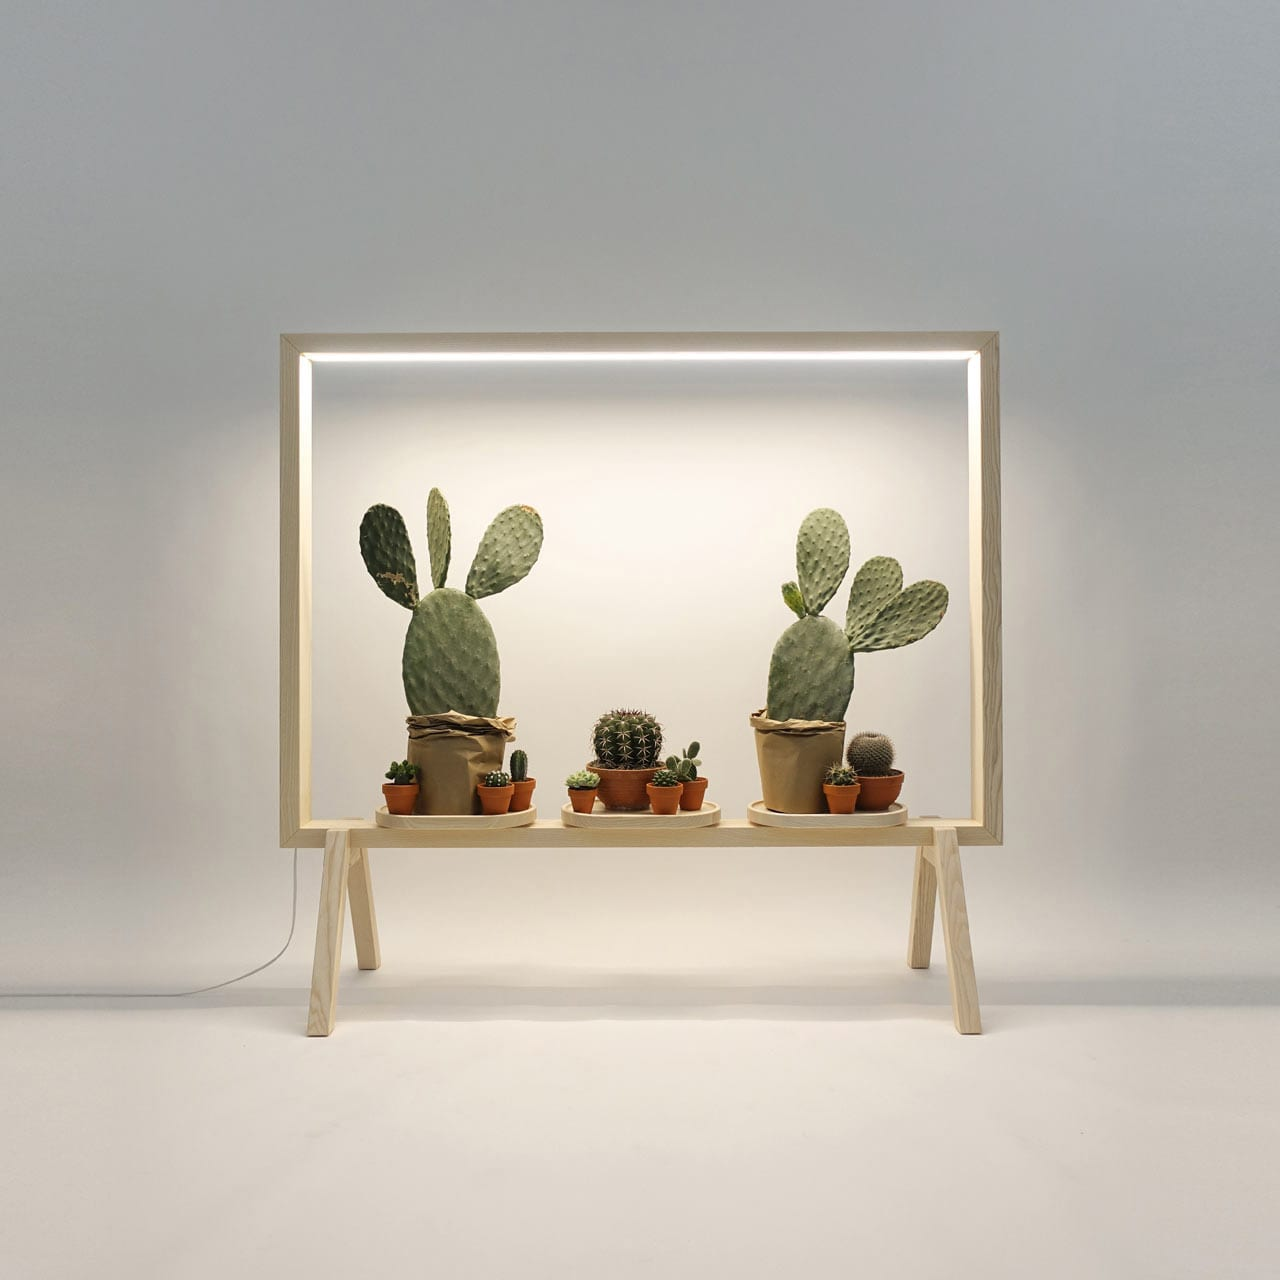 GreenFrame Johan Kauppi Illuminated Frame for Potted Plants at Stockholm Furniture Fair 2018   Yellowtrace